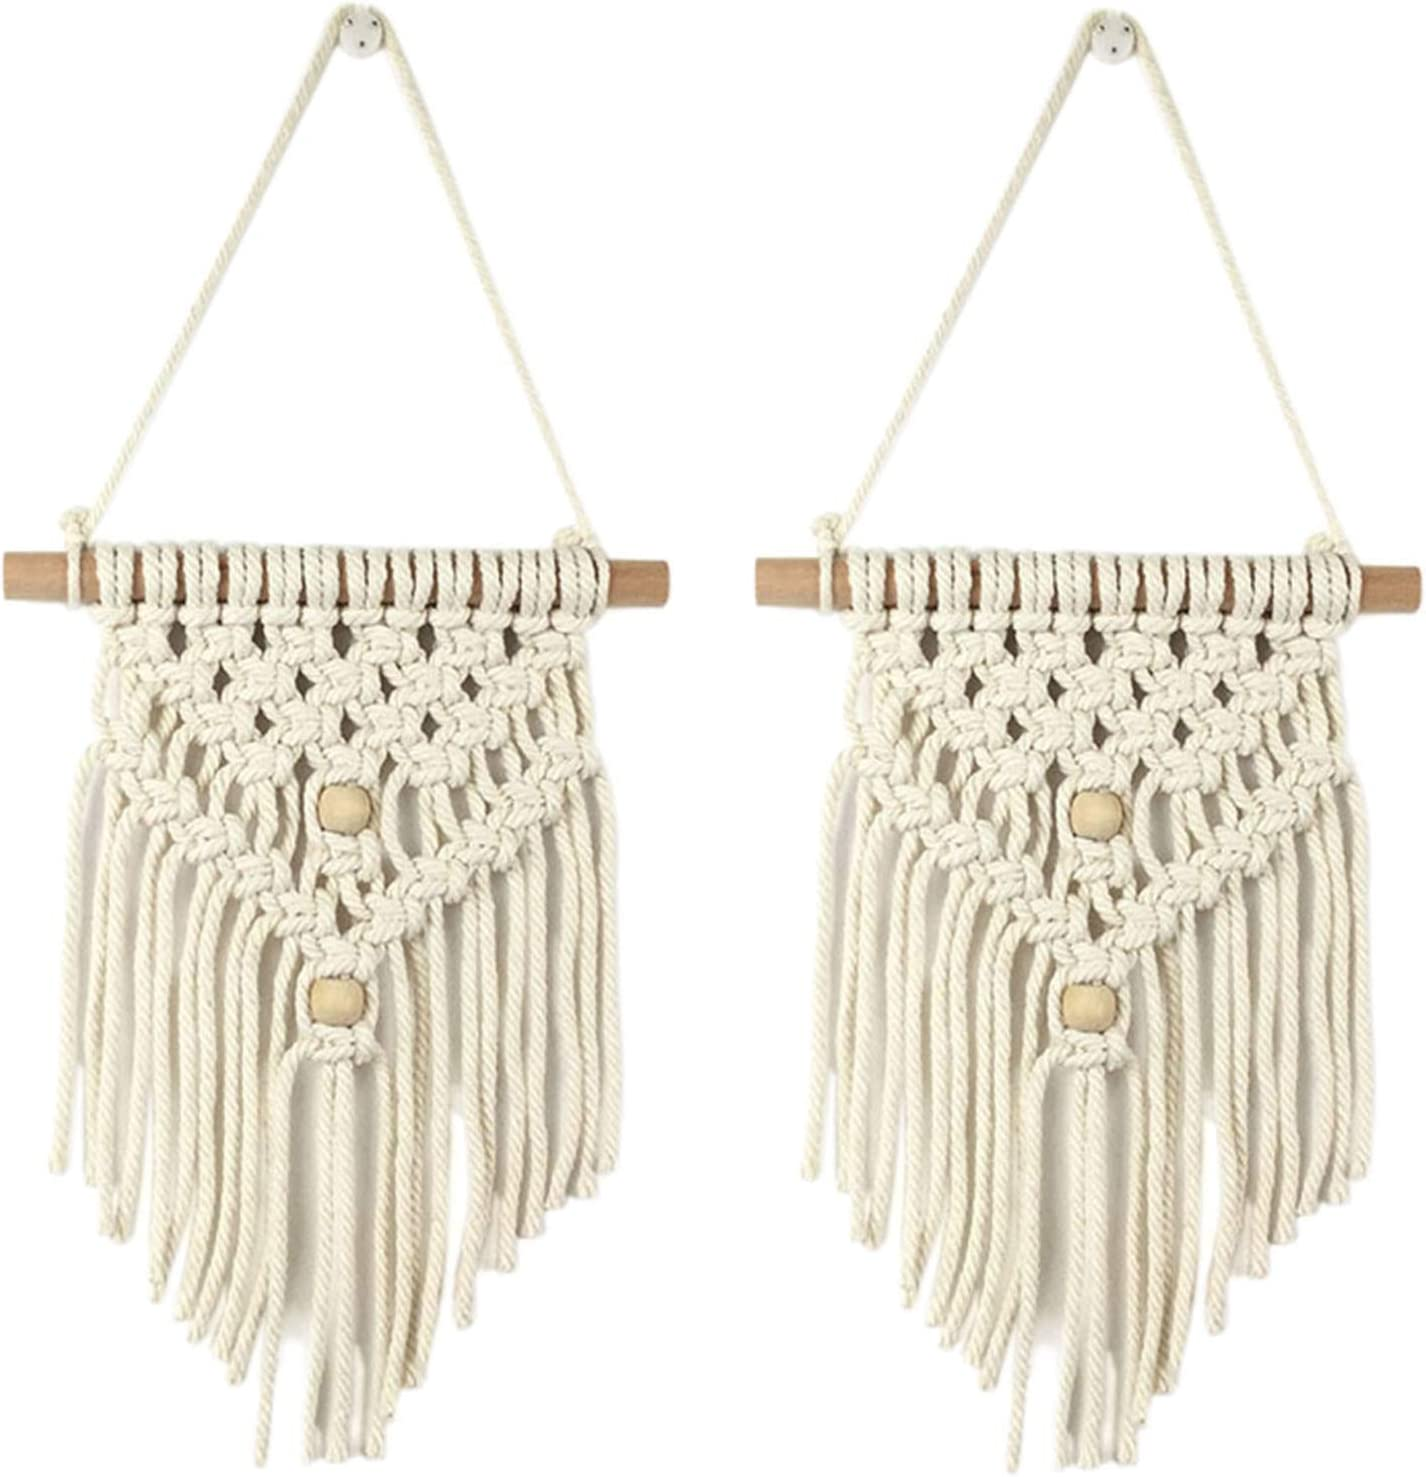 Saien Macrame Wall Hanging Tapestry 2Packs Art Woven Wall Decor with Wooden Beads Boho Chic Home Decoration for Apartment Bedroom Living Room(#4)